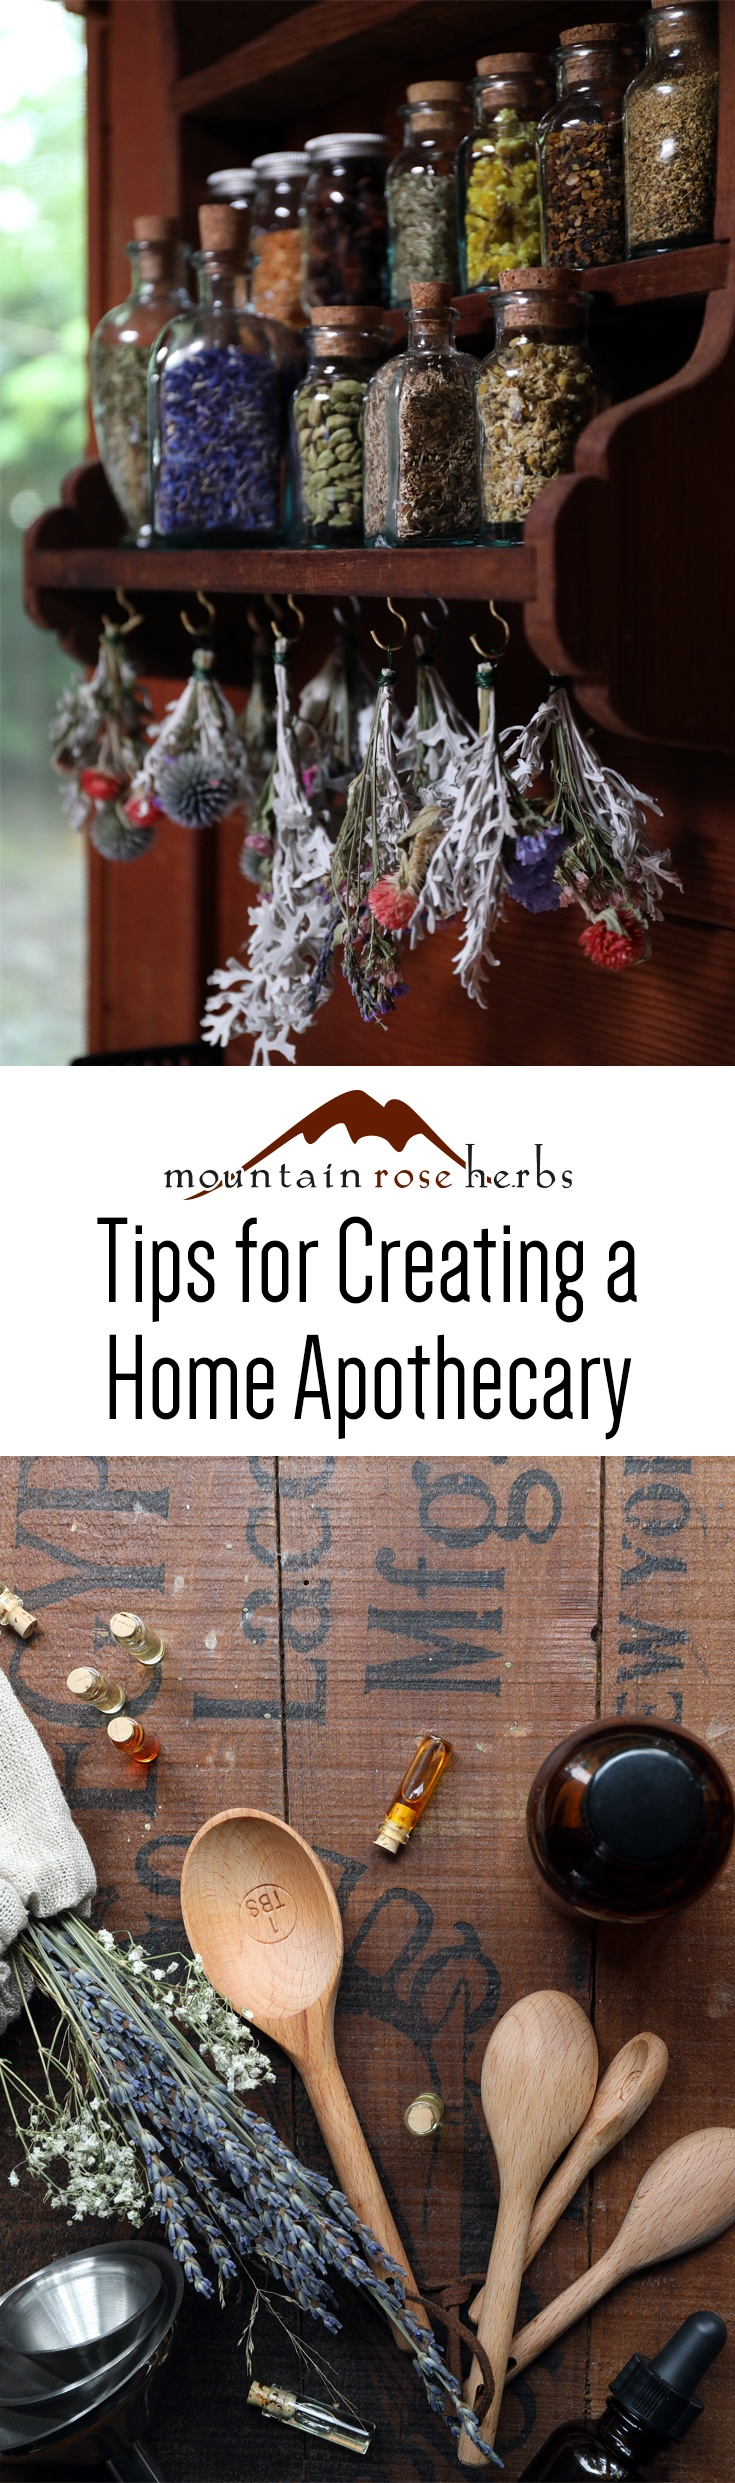 Tips for Creating a Home Apothecary Pin